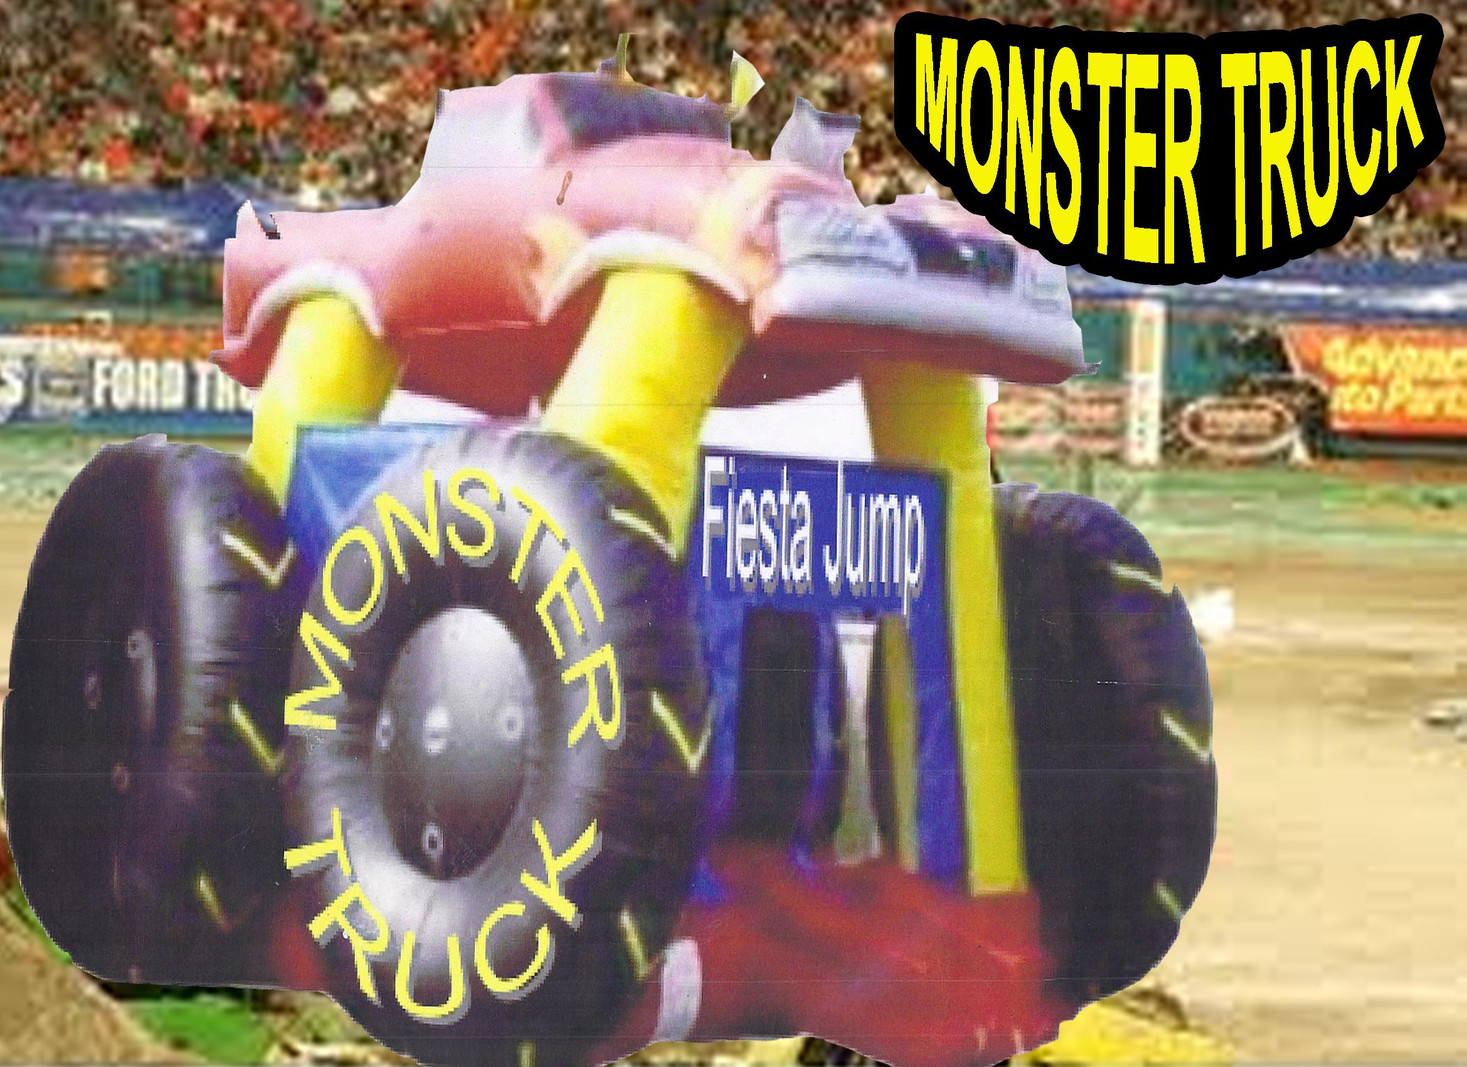 Monstertruck2013.jpg